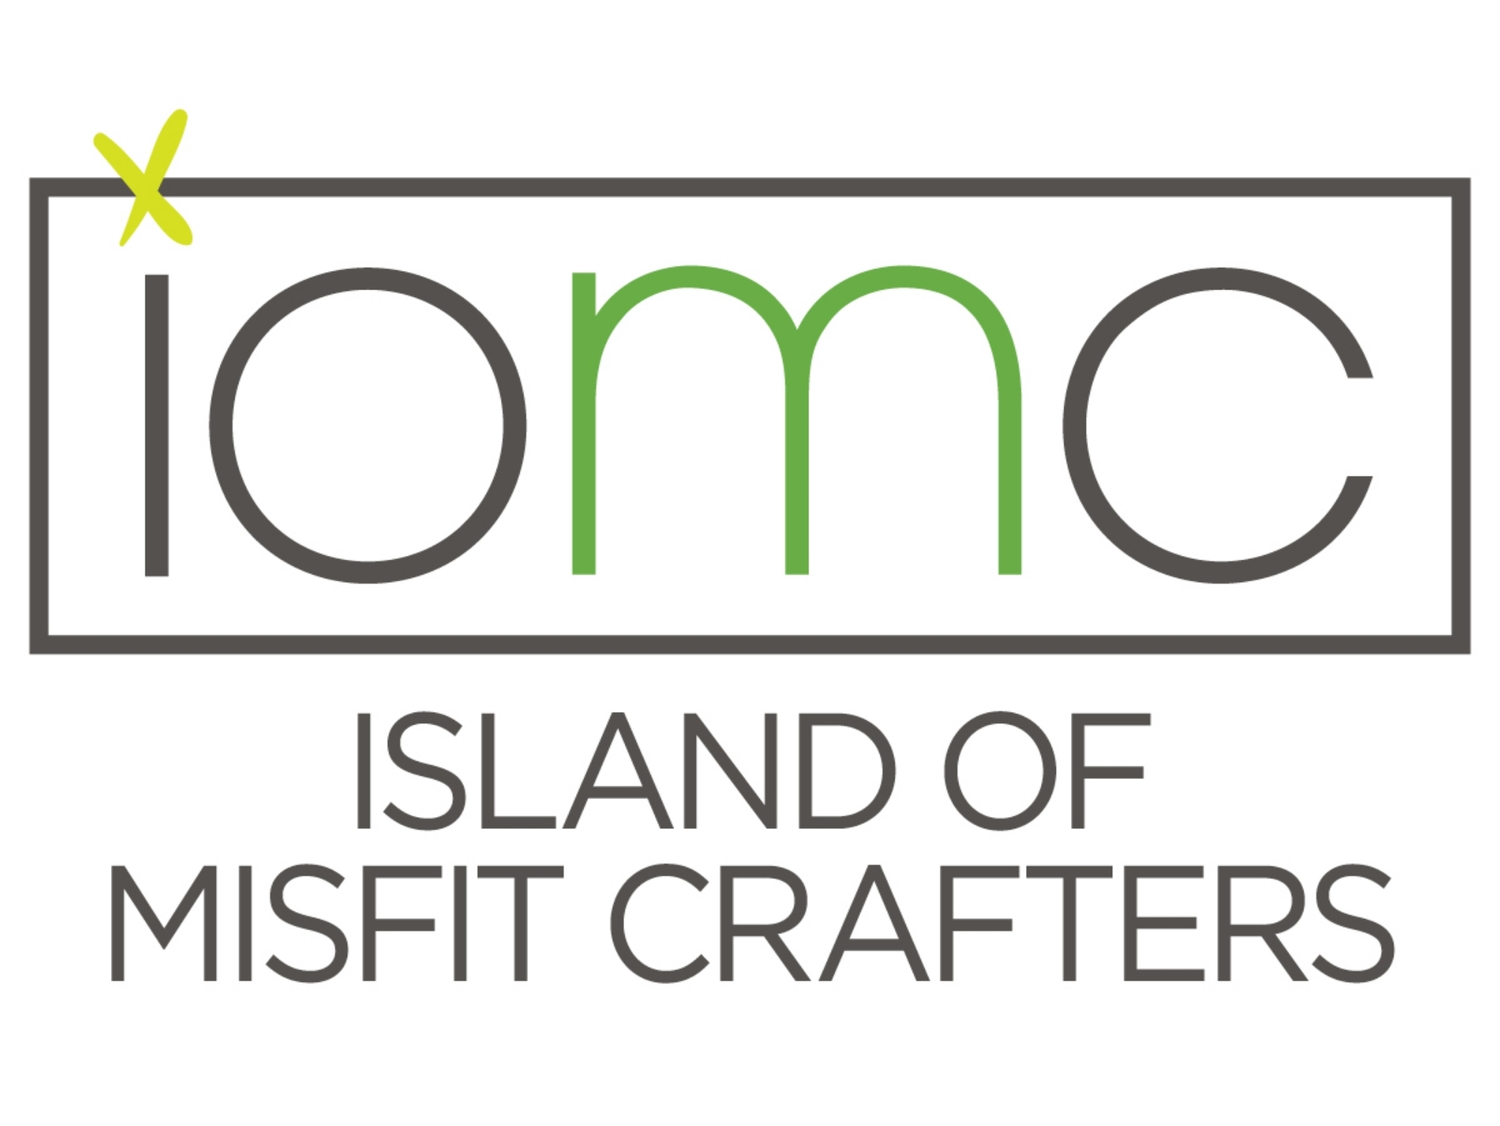 Island of Misfit Crafters